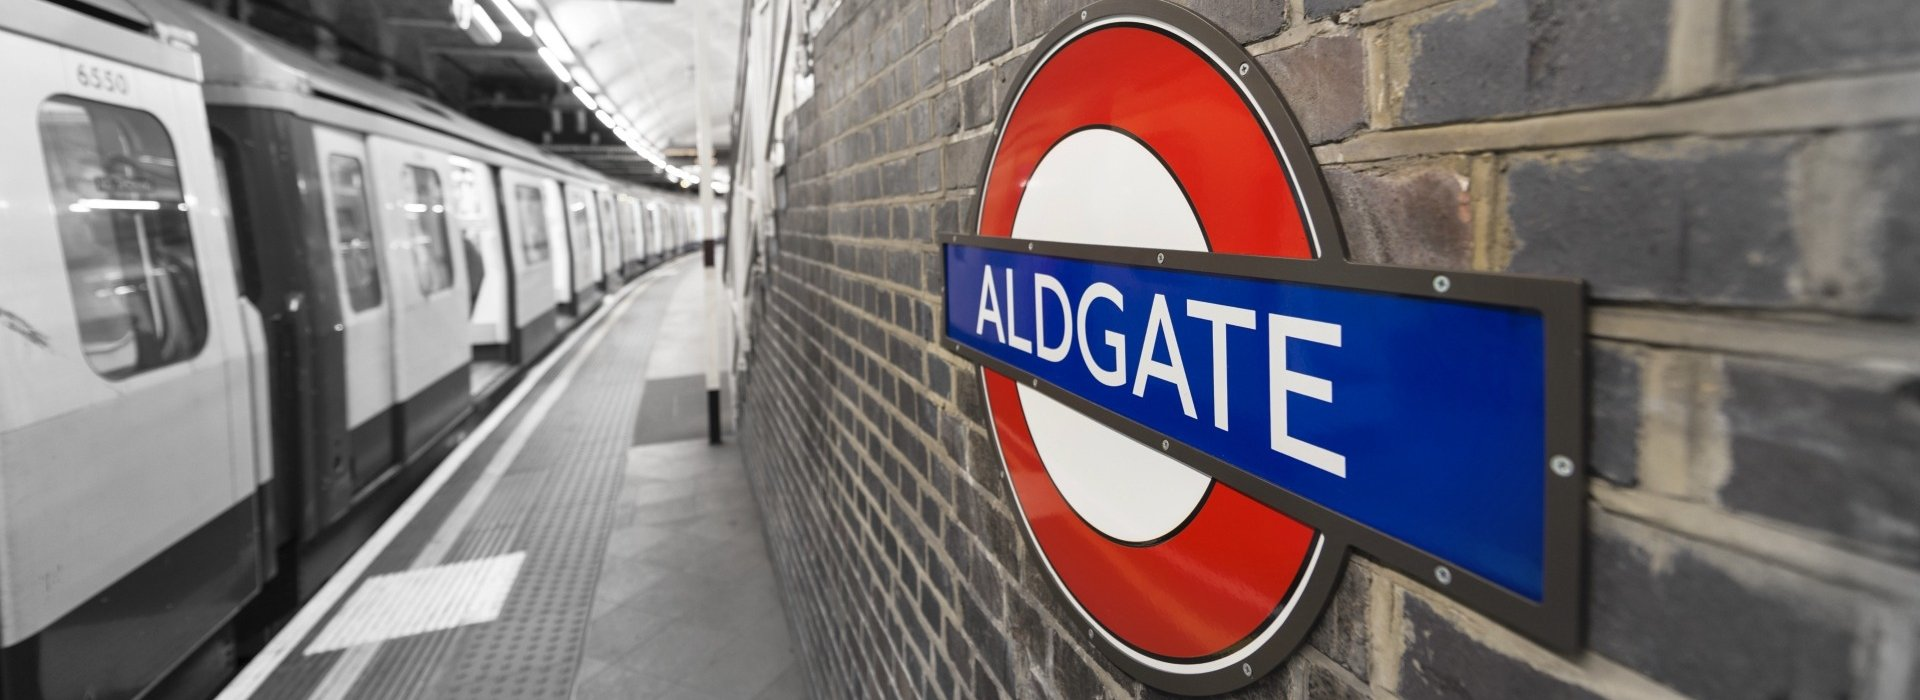 Stations: Aldgate or Whitechapel